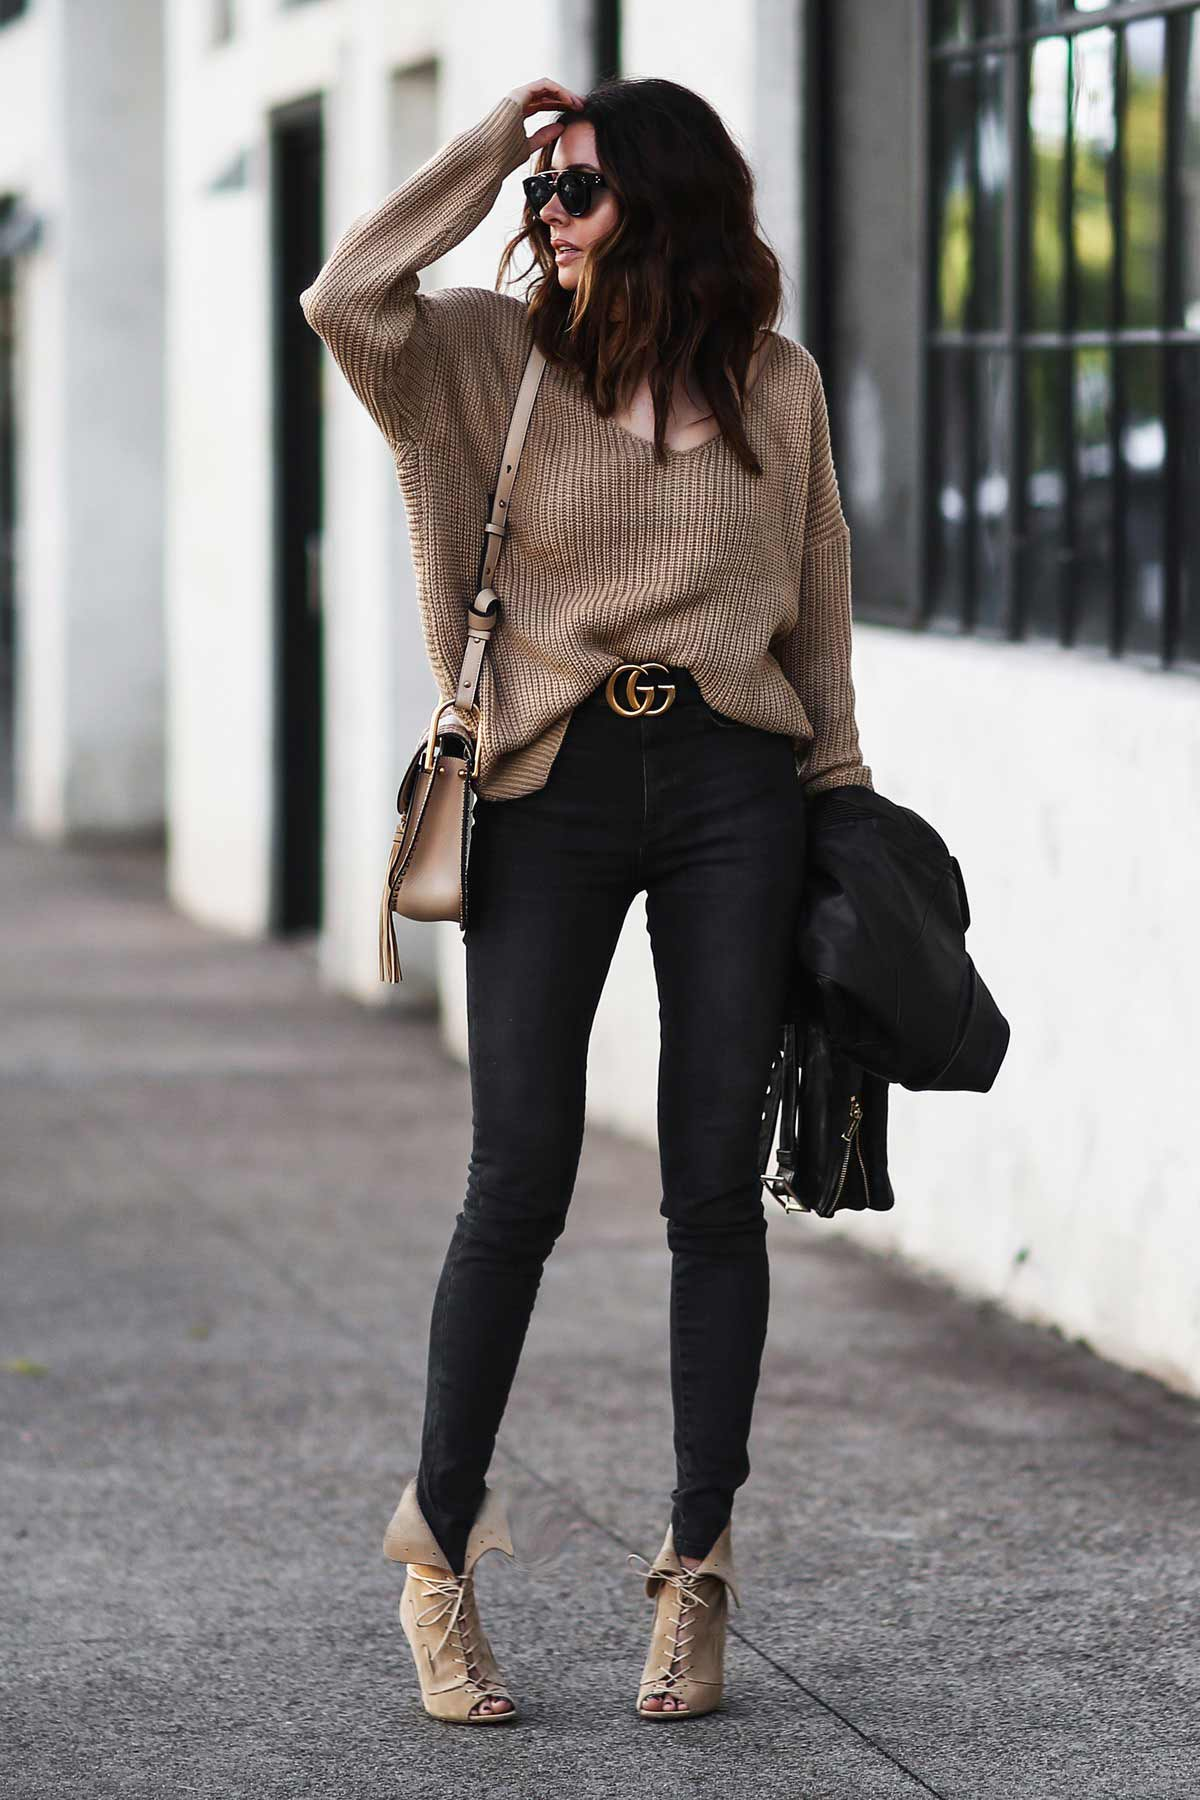 fashioned-chic-in-skinny-jeans